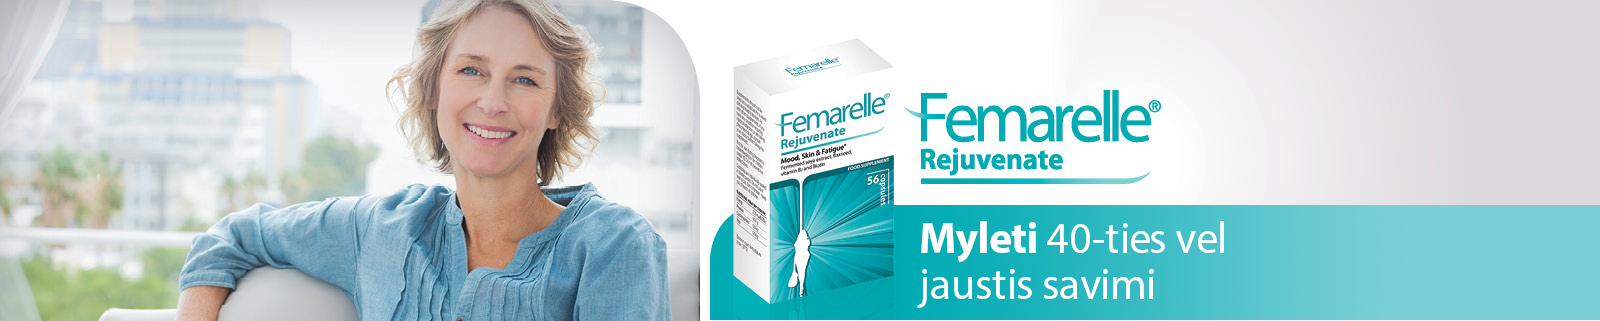 femarelle-rejuvenate-lt